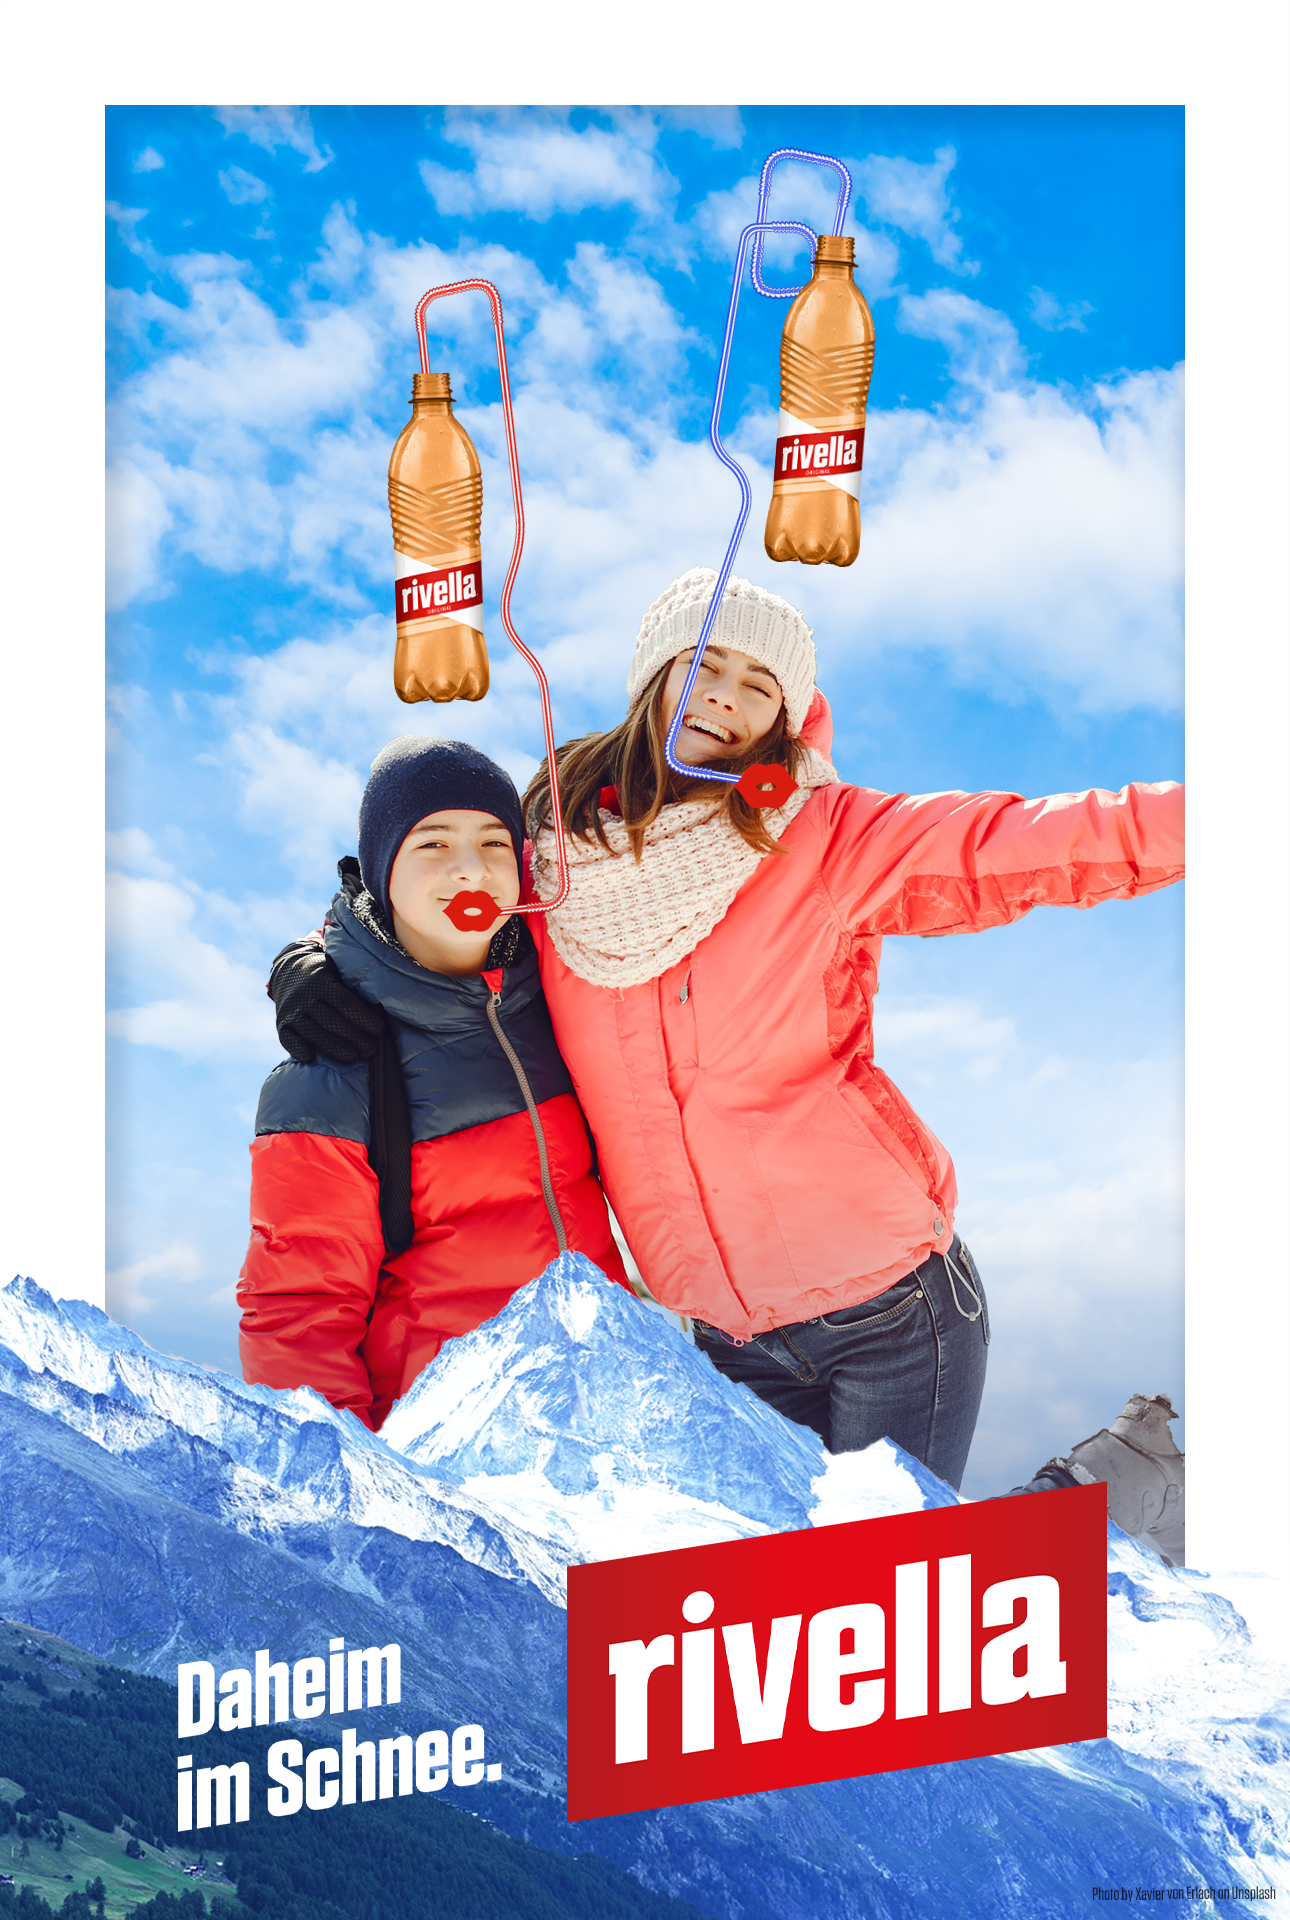 Rivella AR promotion. Increasing sales by automatic product sampling by an AR game combined with a vending machine.